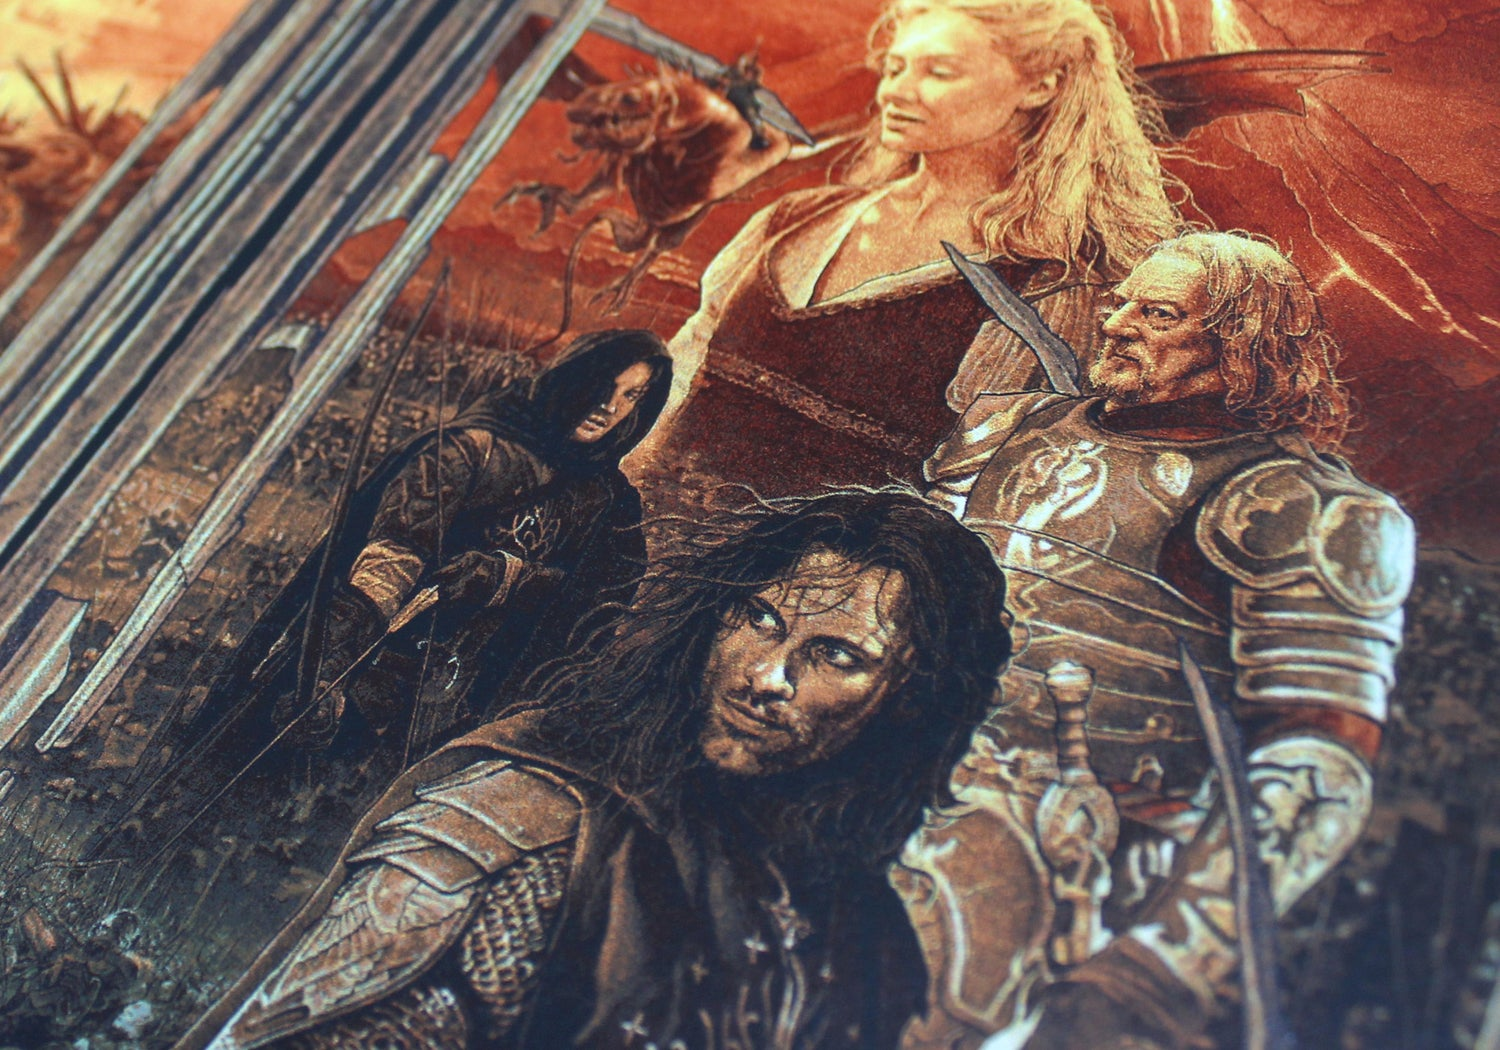 Image of The Lord of the Rings Variant